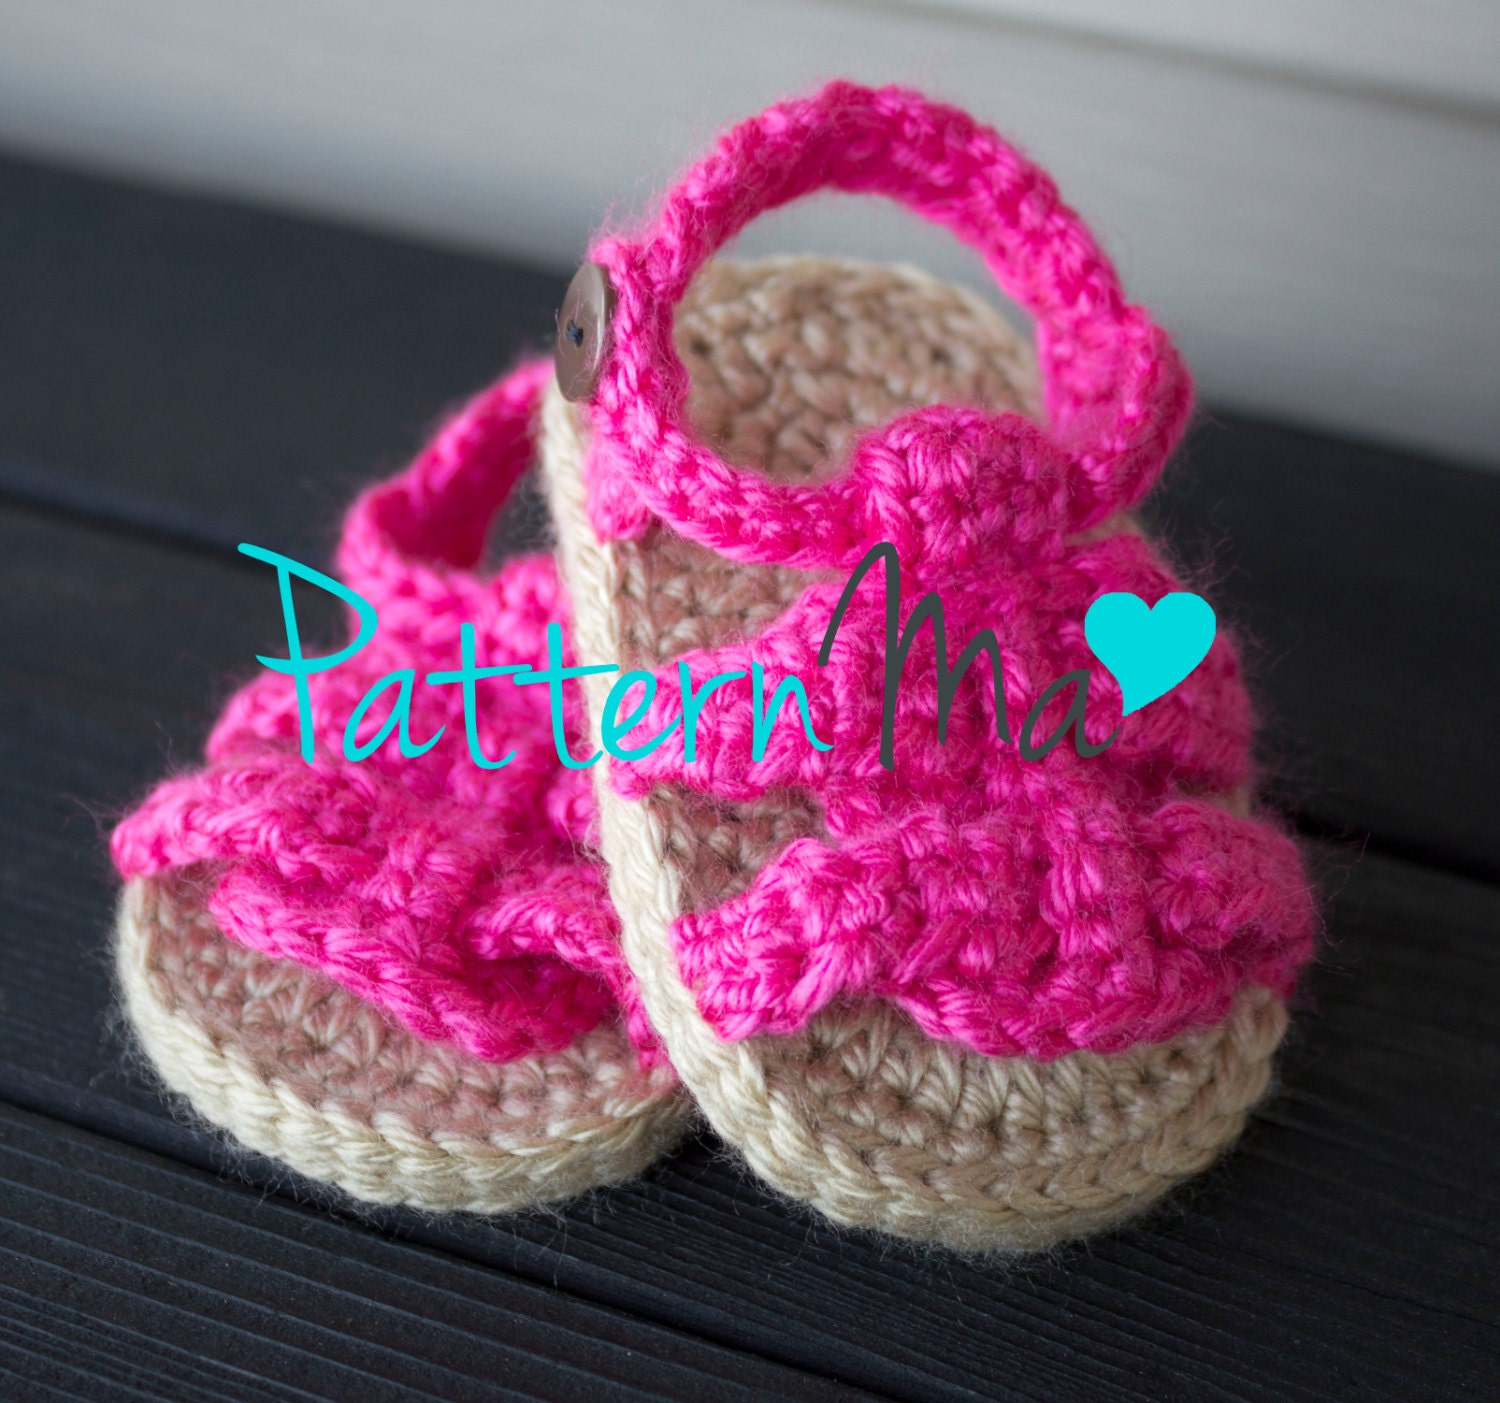 Crochet Pattern Baby Girl Sandals : Items similar to Crochet Baby Sandals Pattern Boy or Girl ...